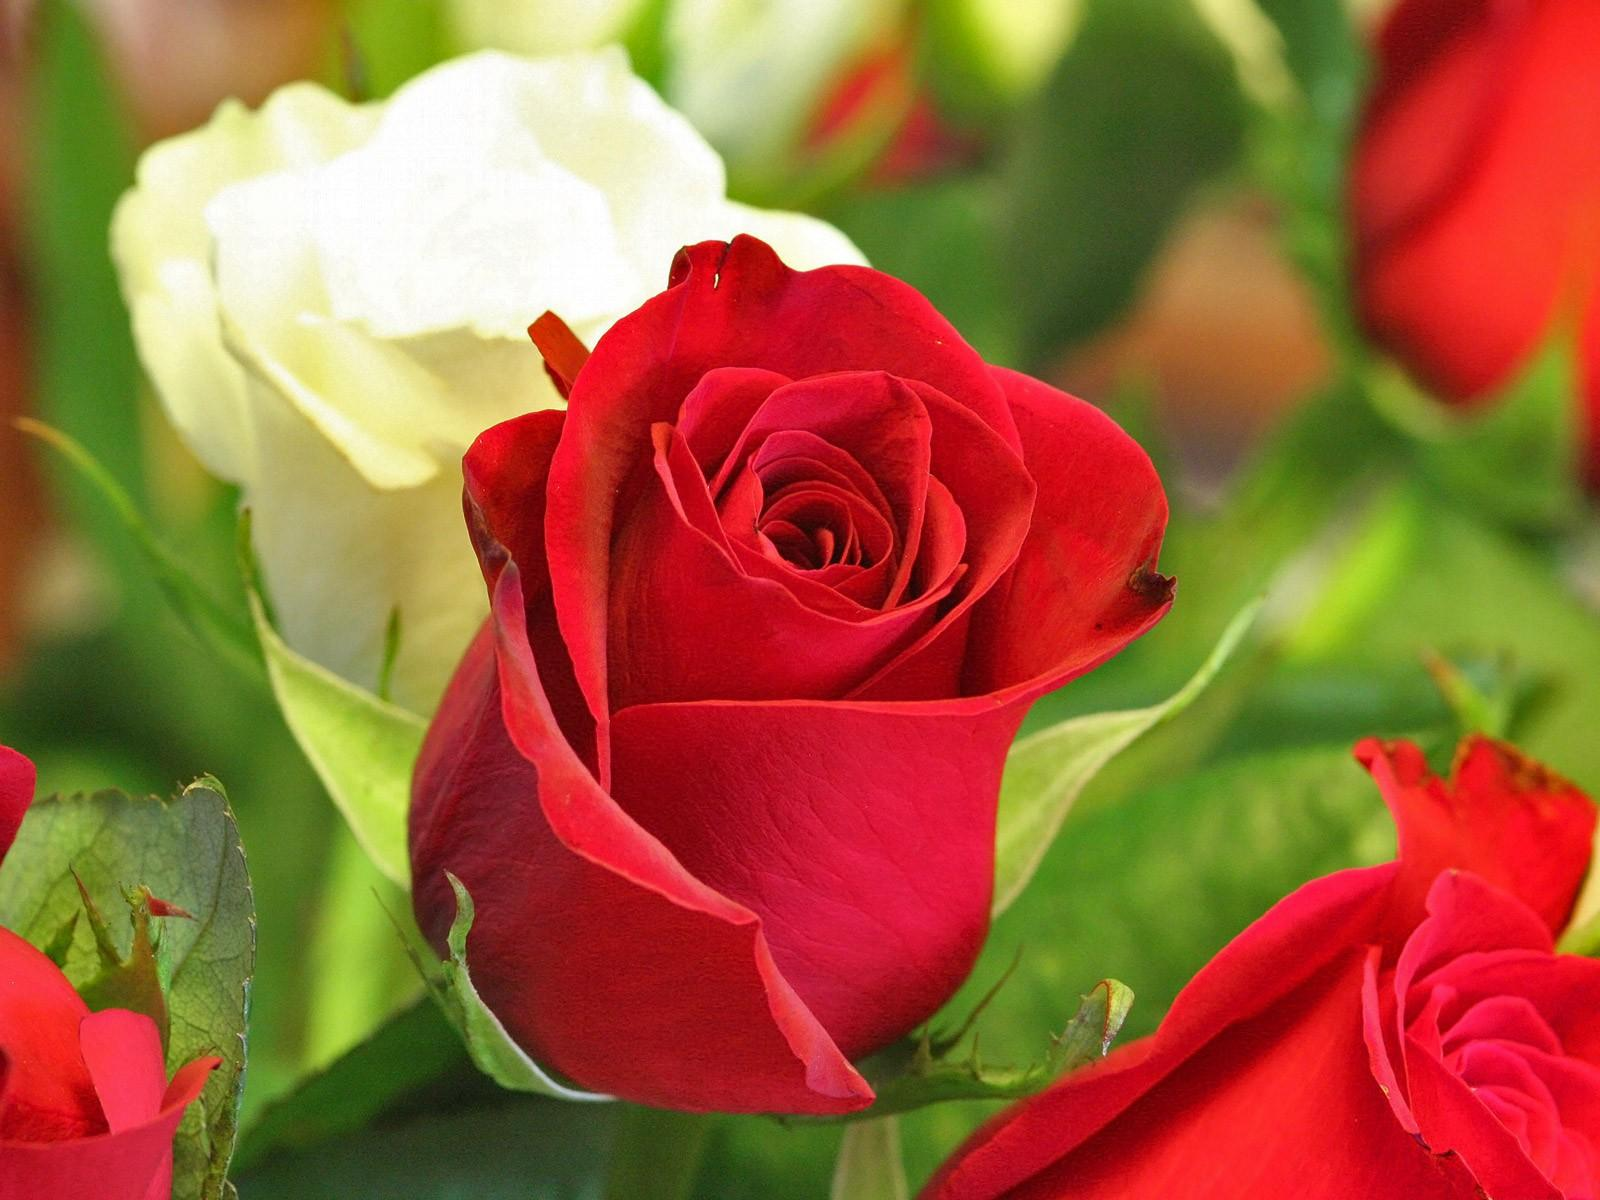 The Wallpapers Hot Point: Beautiful Rose Flowers